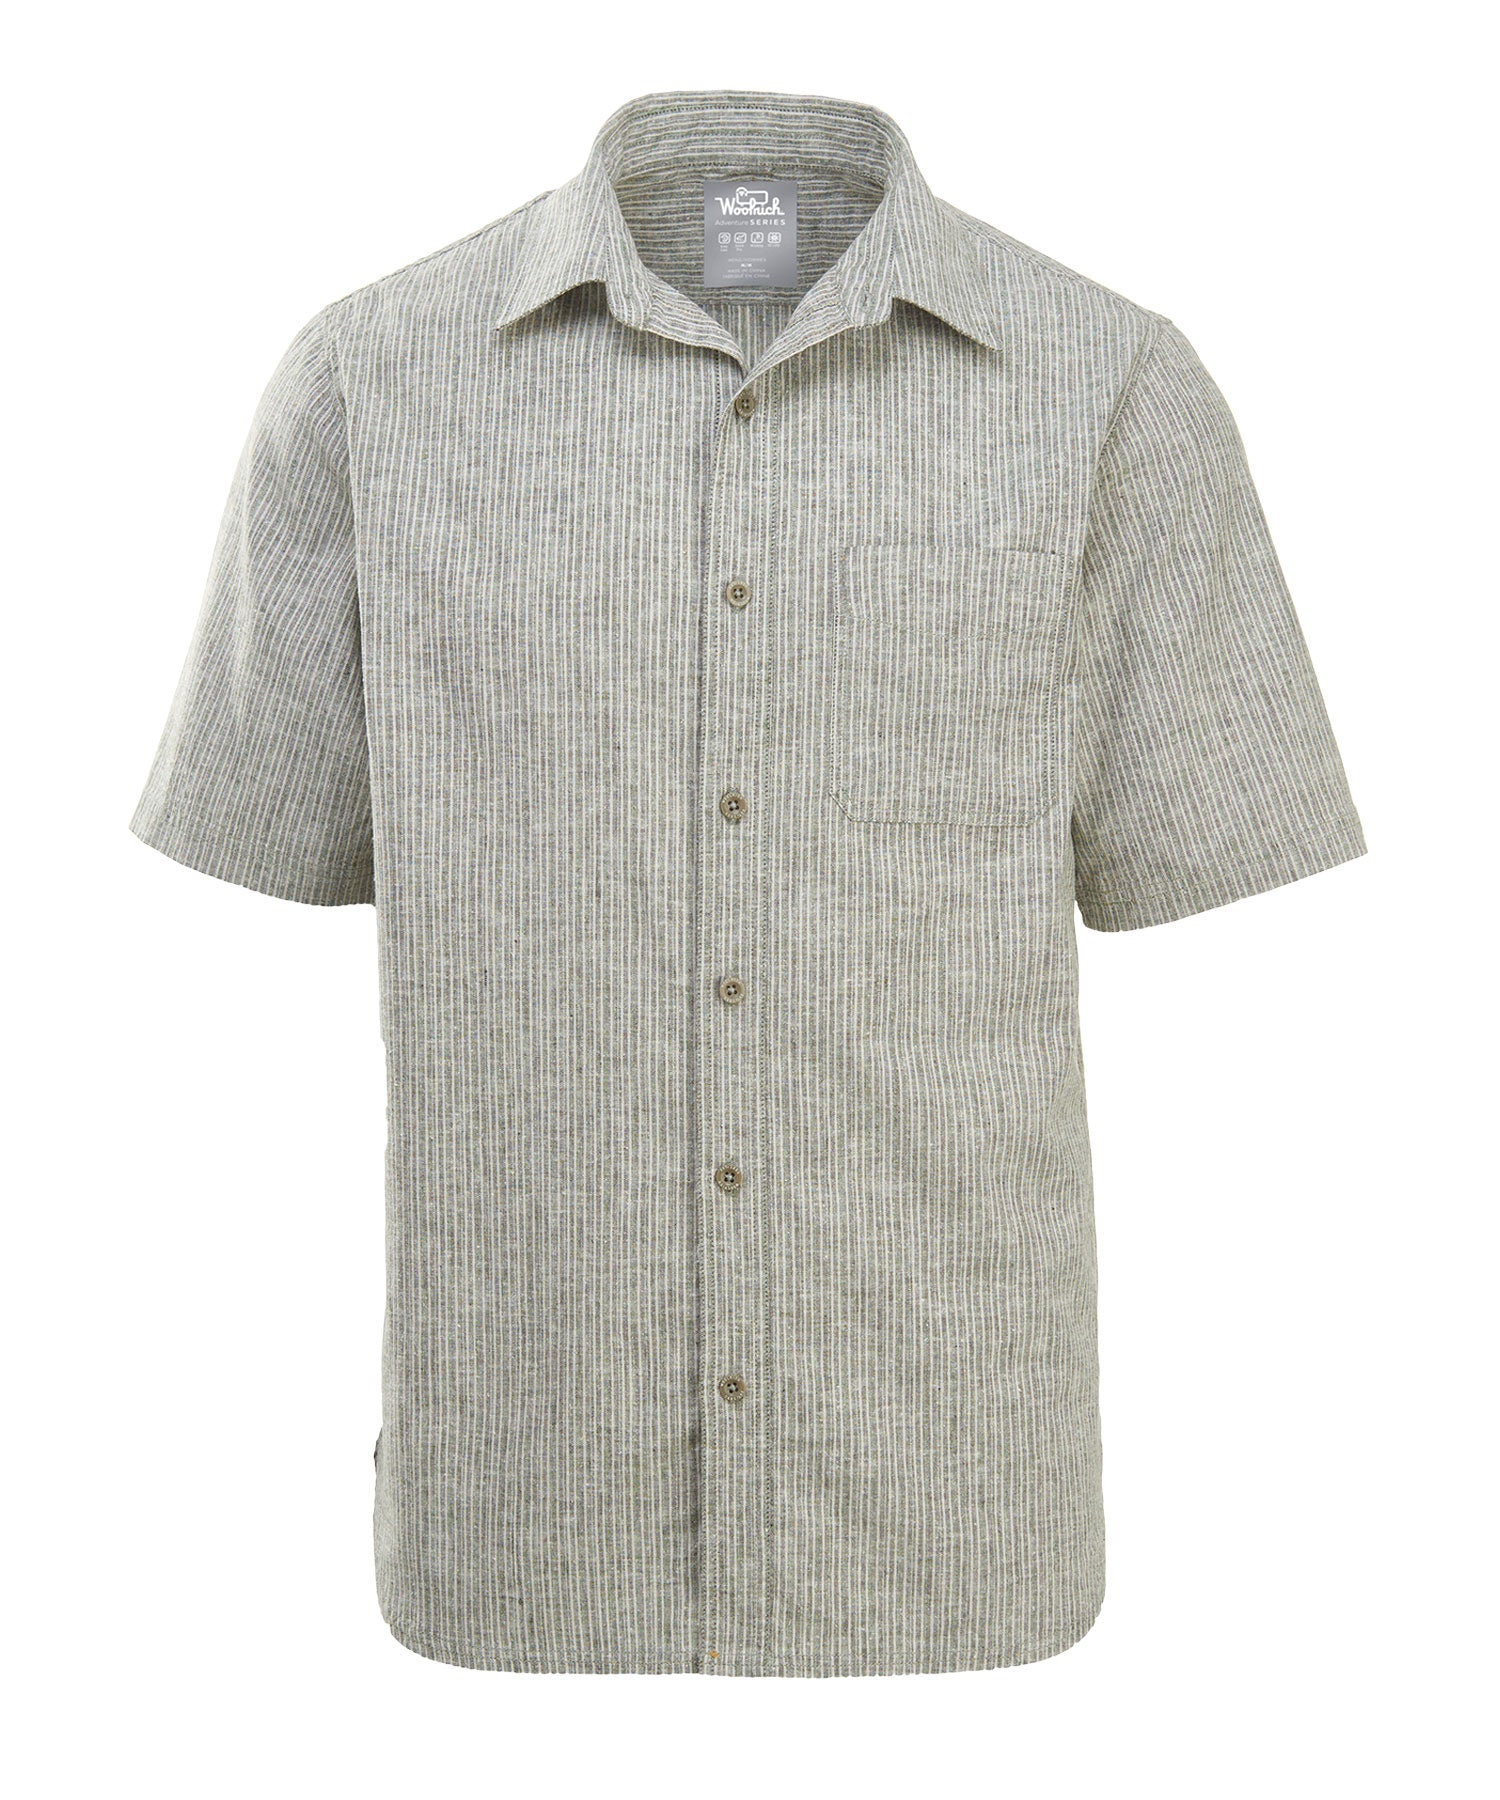 Woolrich Men's Hemp/Cotton Blend Short Sleeve Shirt